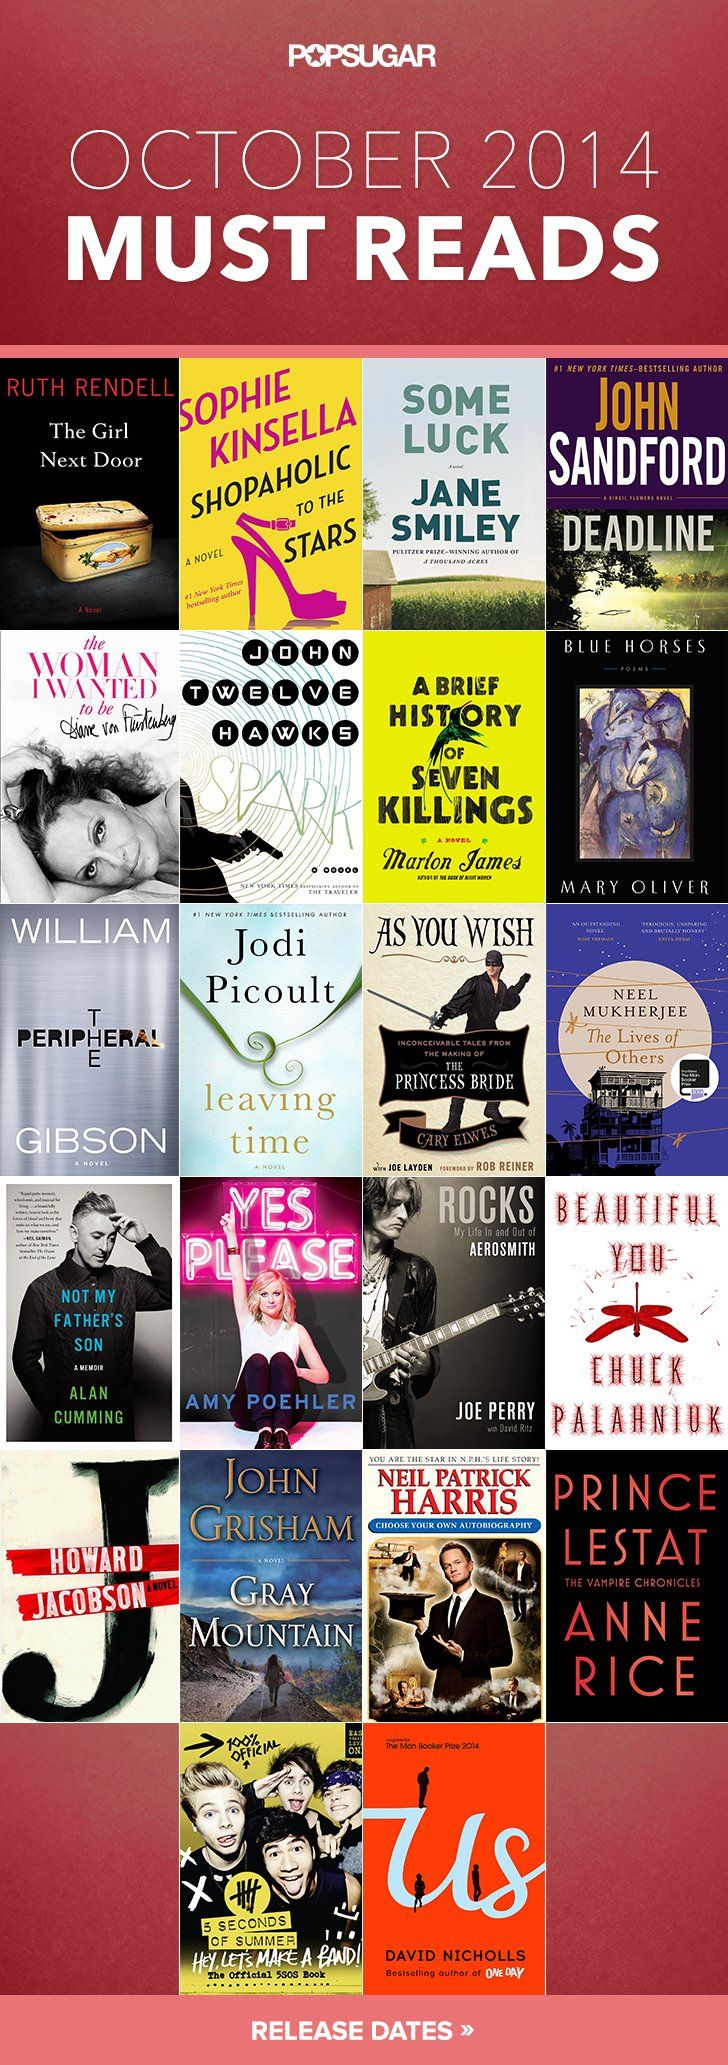 Pin for Later: October Must Reads